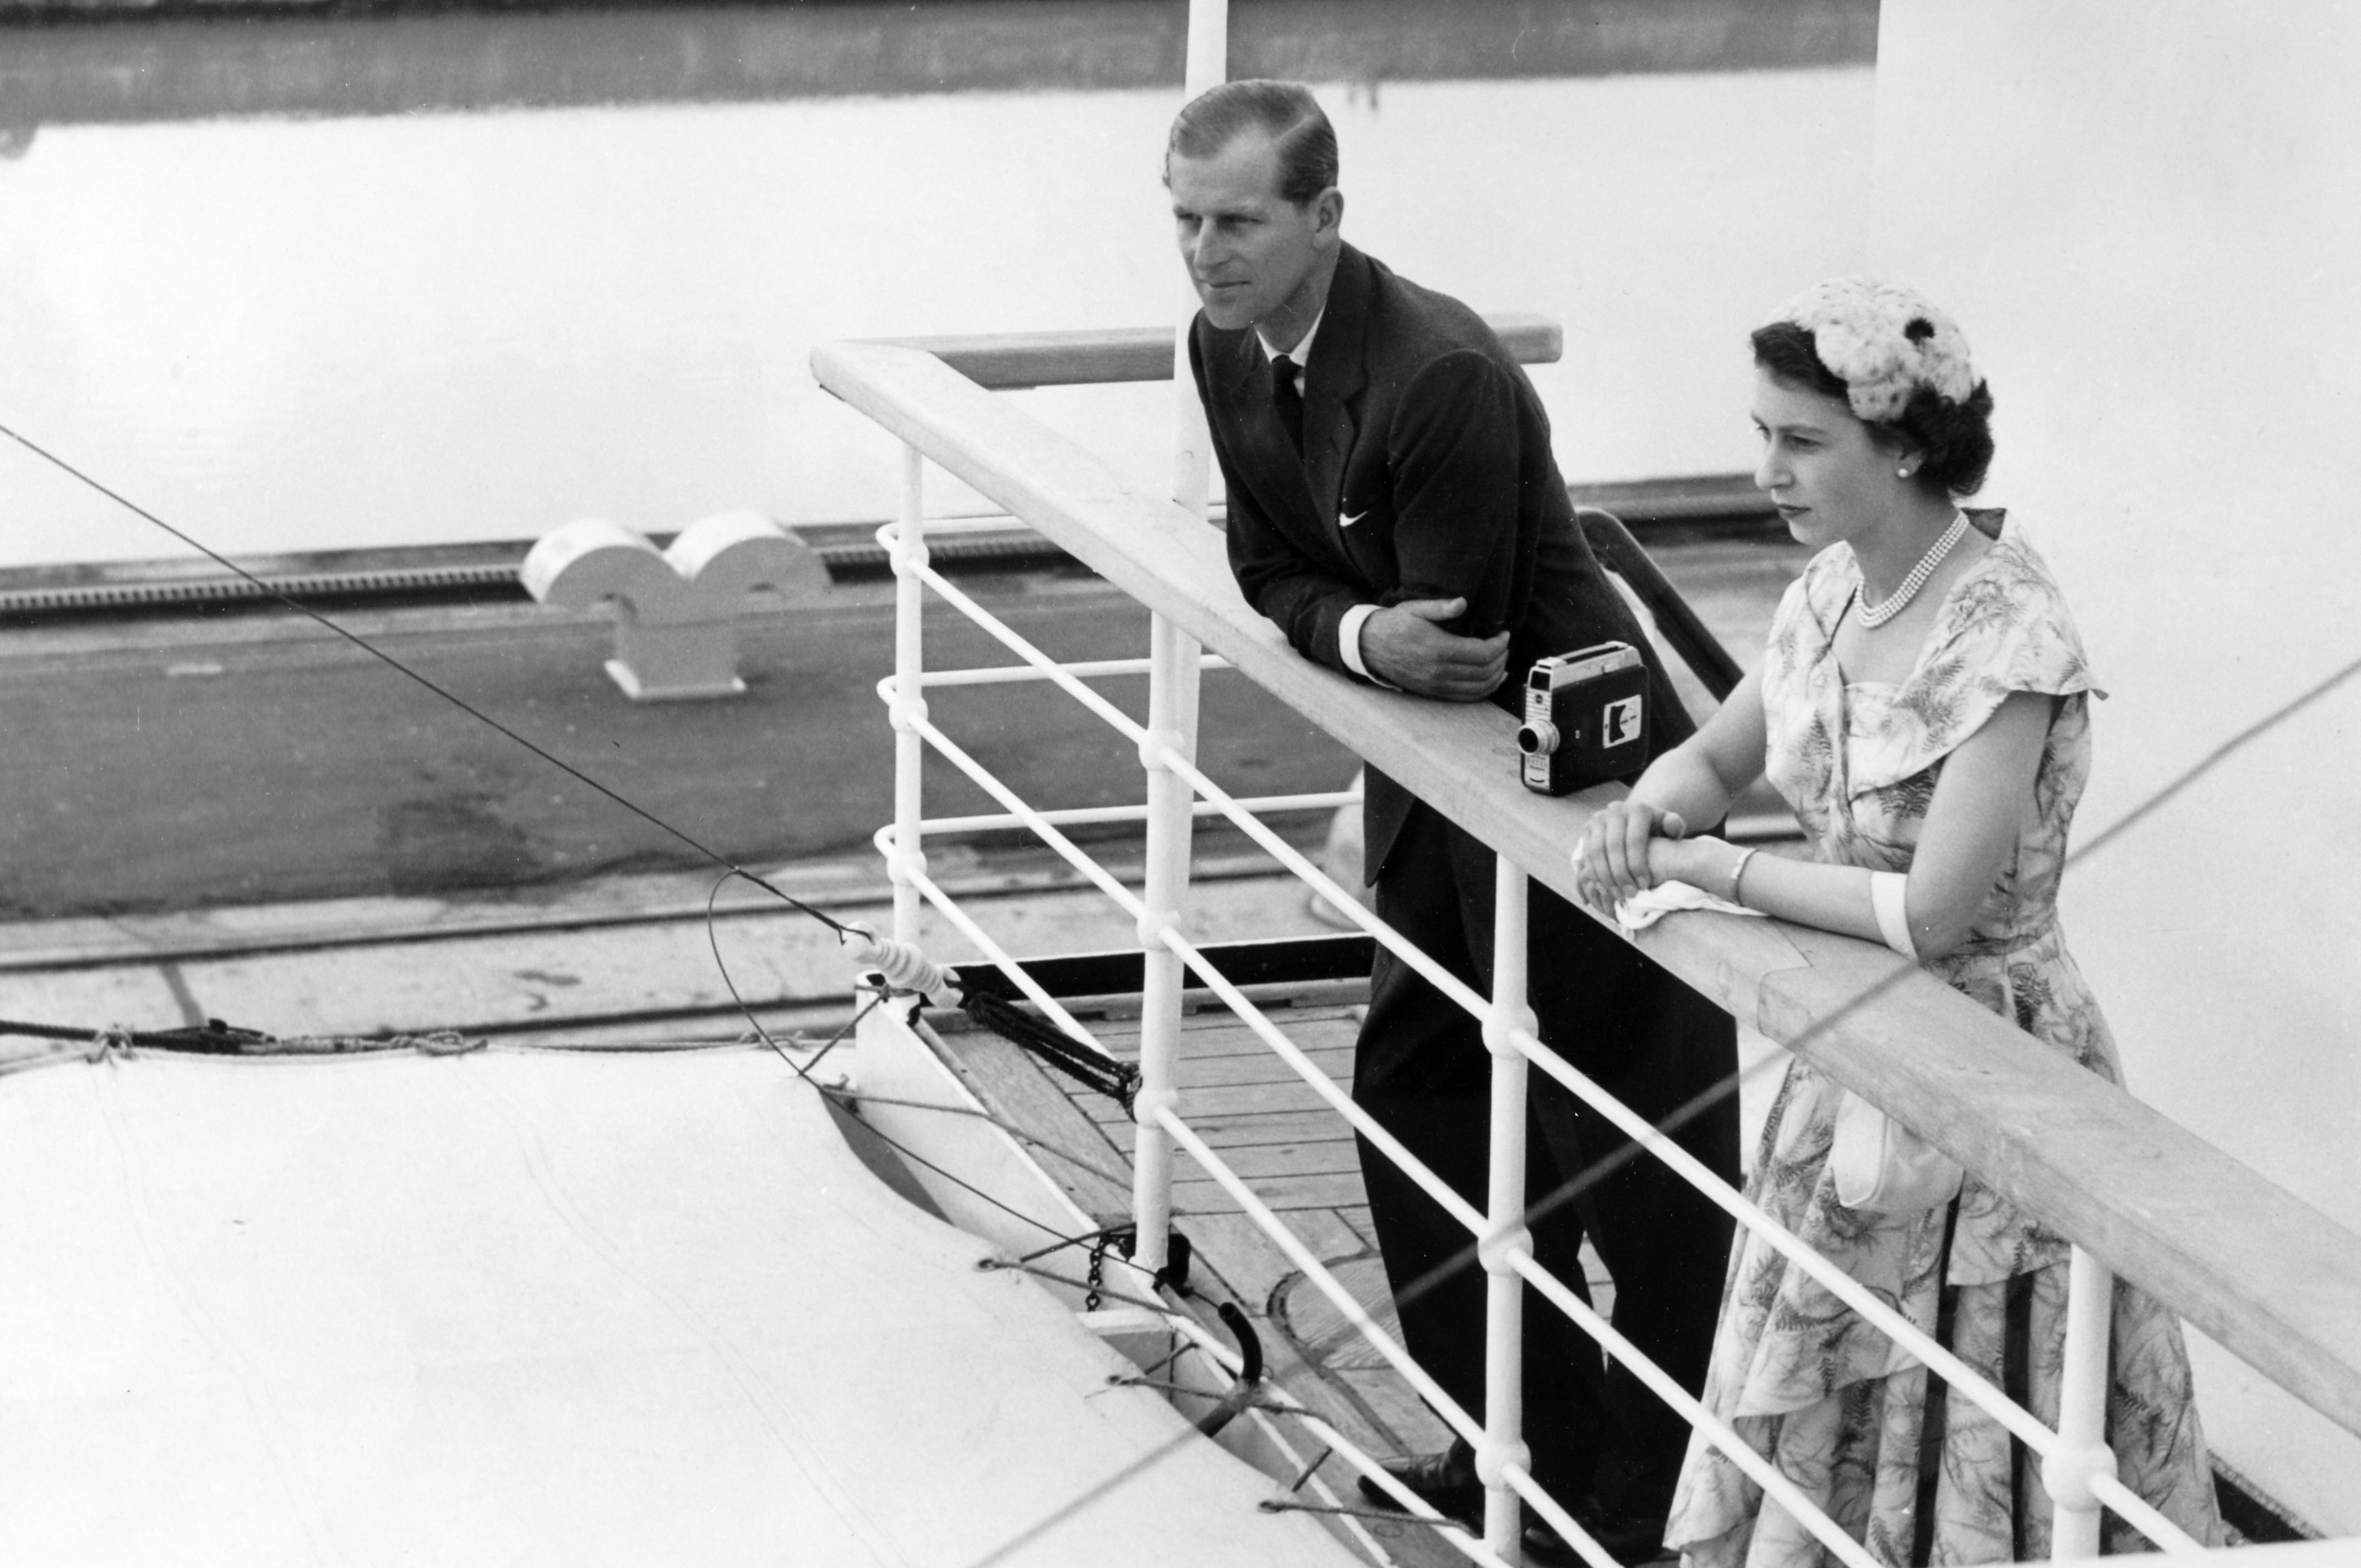 Queen Elizabeth II and the Duke of Edinburgh on board the Gothic as the ship negotiates the Miraflores locks in the Panama Canal on Dec. 3, 1953. Photo by Popperfoto/Getty Images